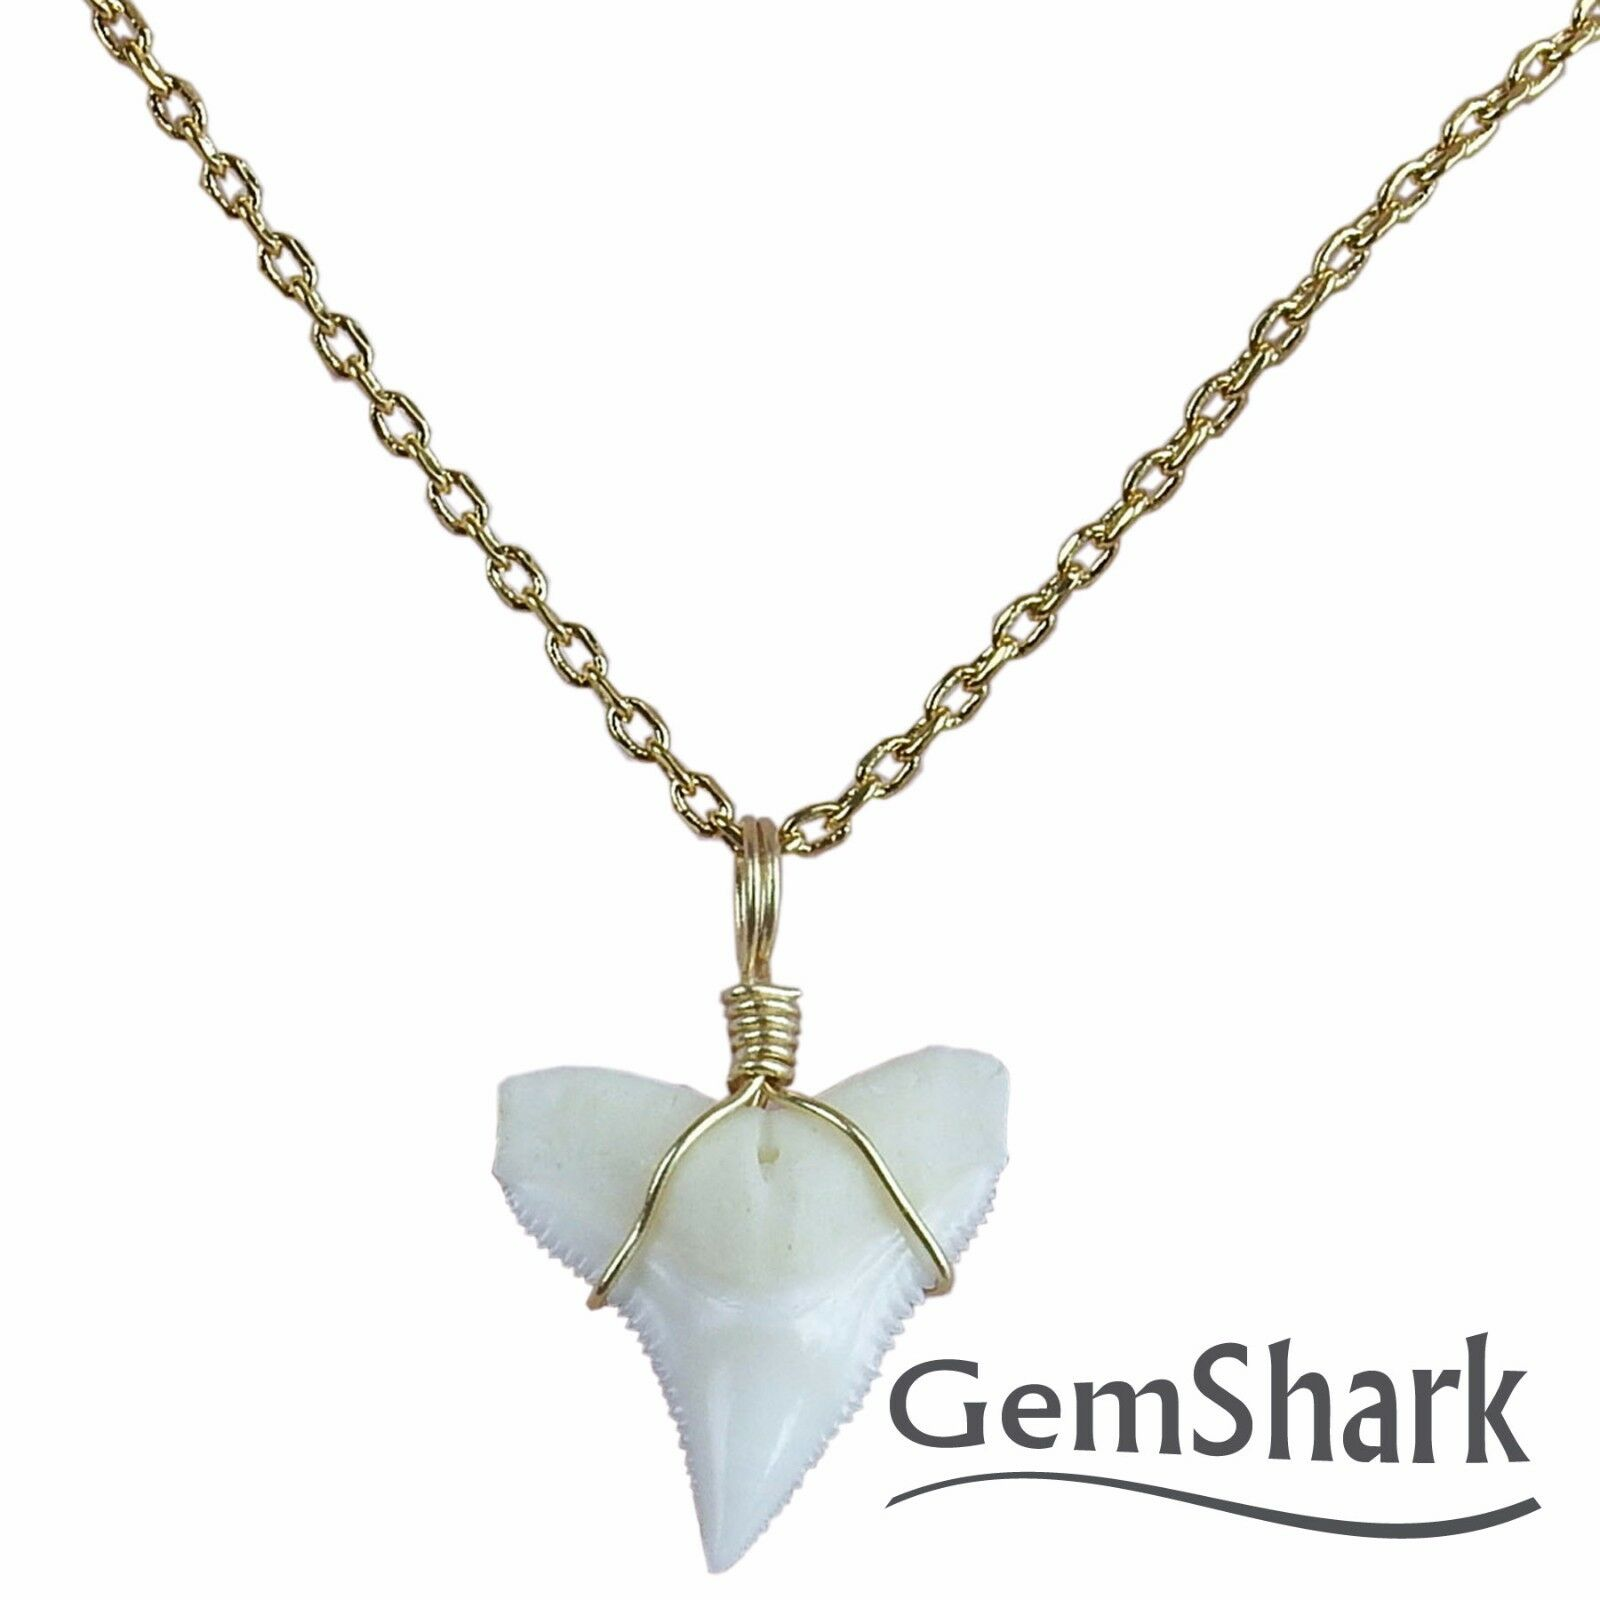 products jewelry givenchy necklaces shark necklace the pendant tooth enlarged